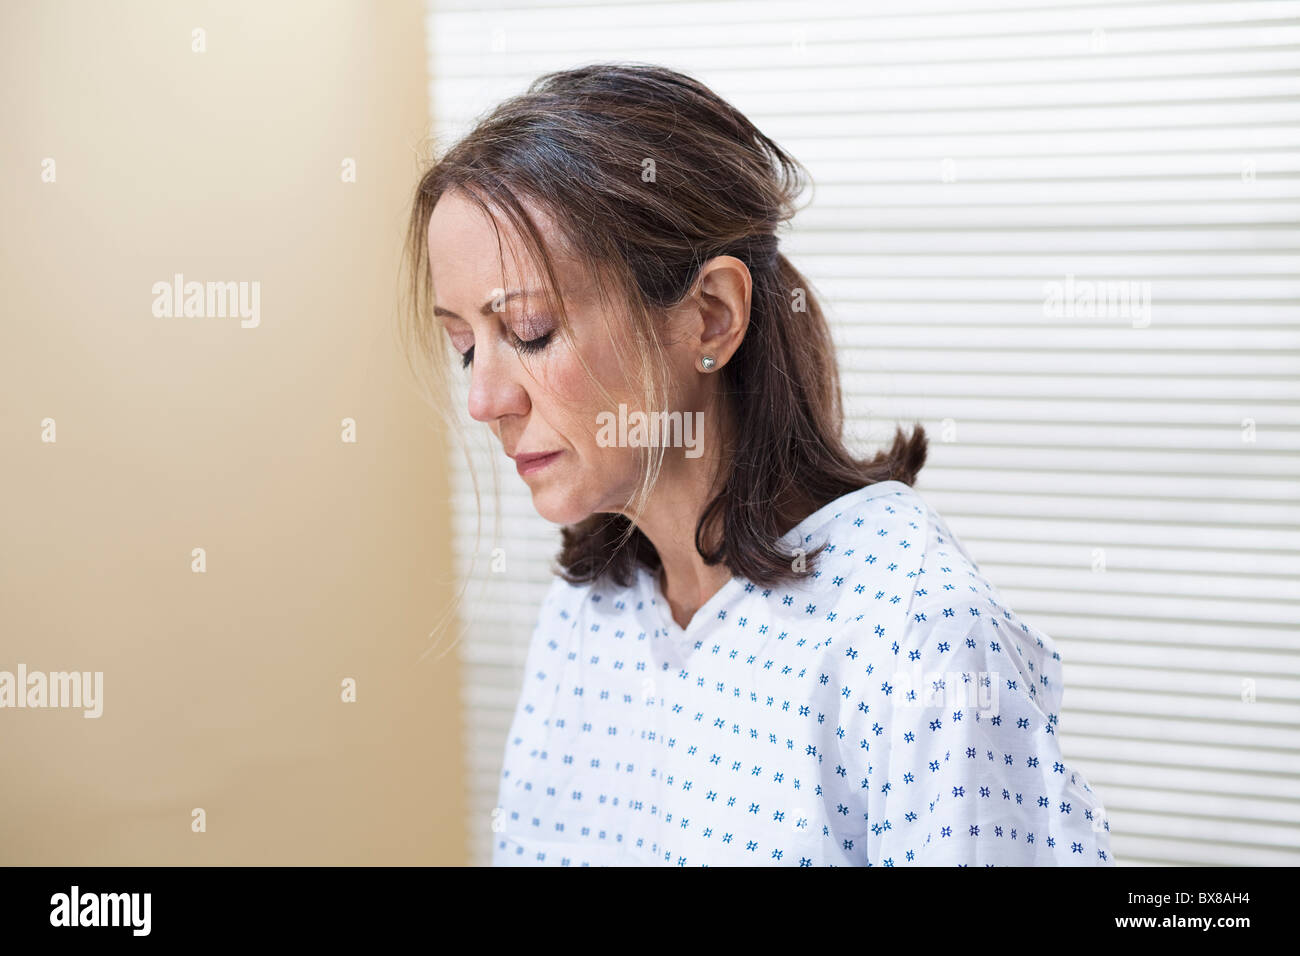 Woman in examination room - Stock Image